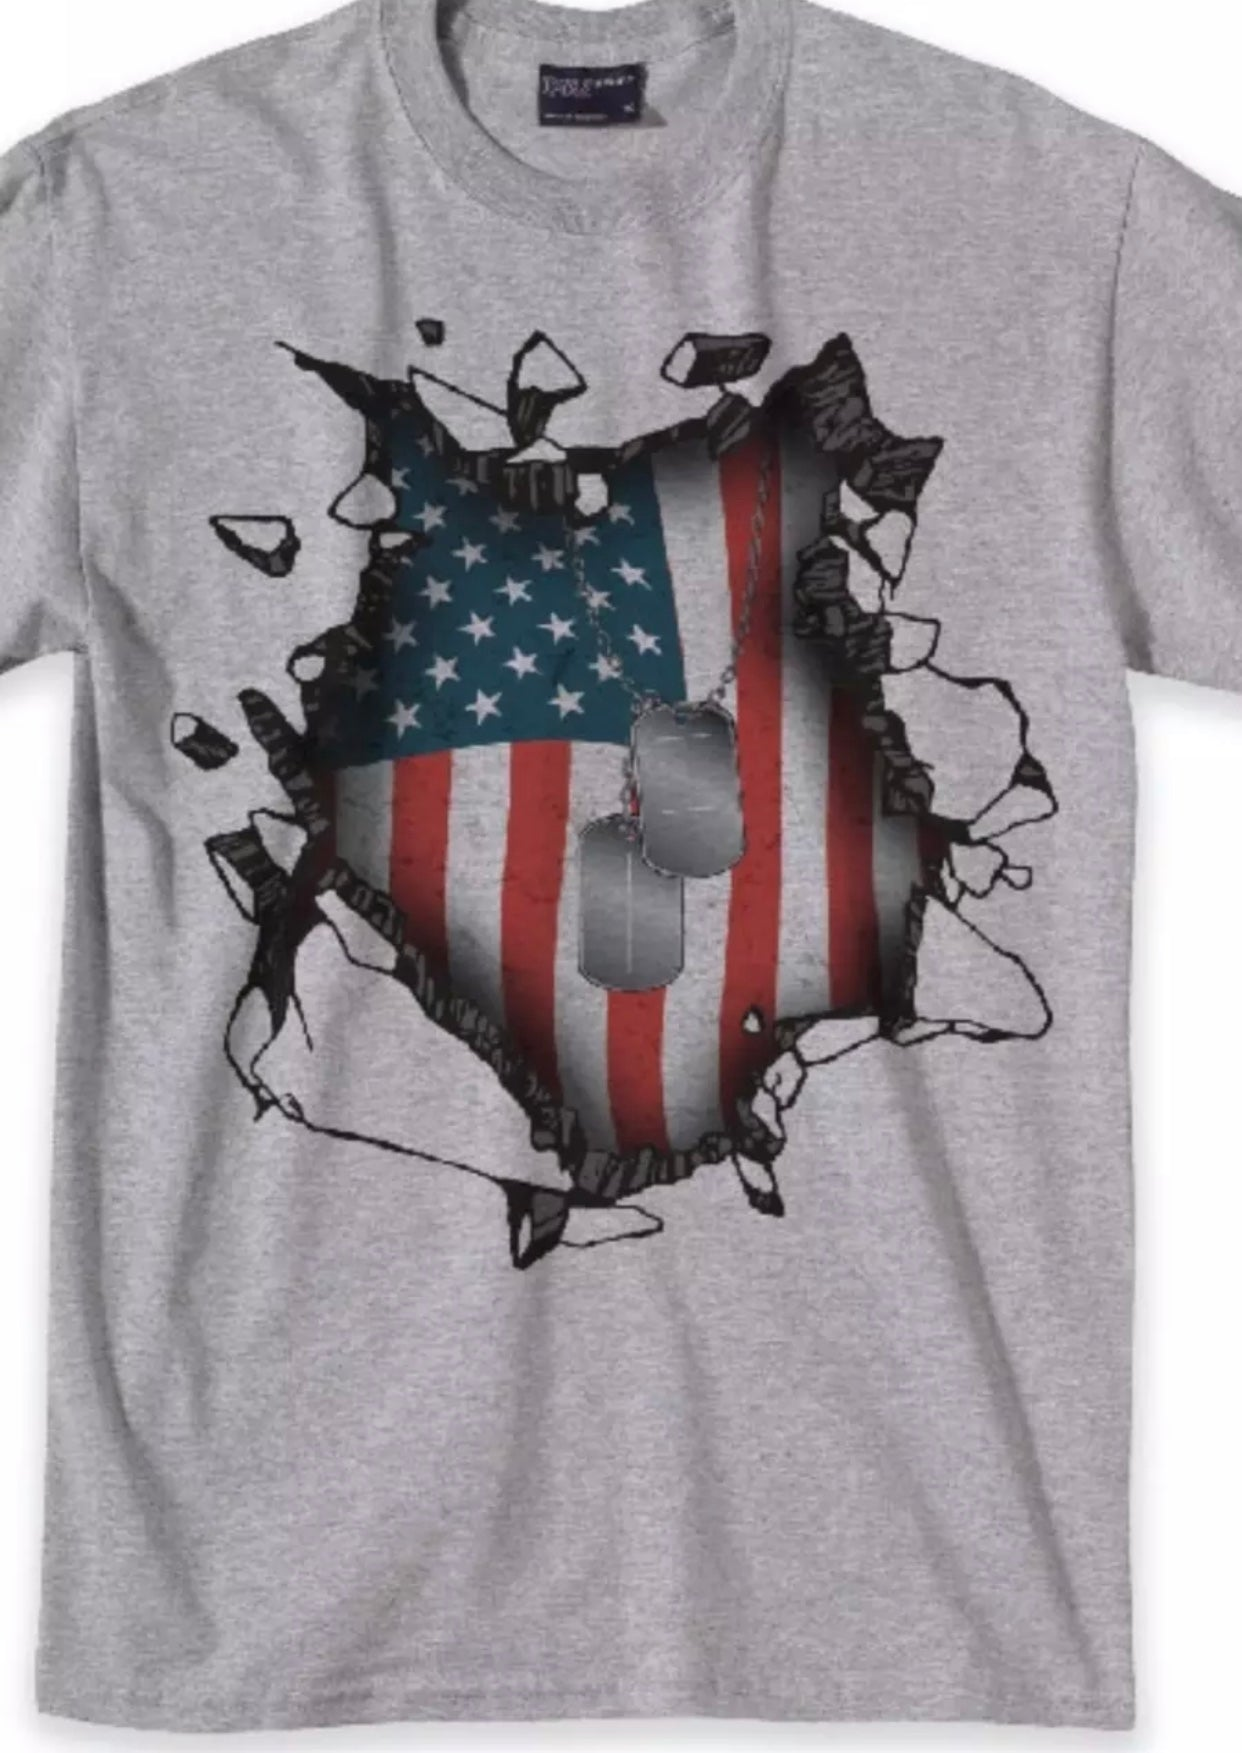 Dog Tag American T Shirt - The Wall Kids, Inc.